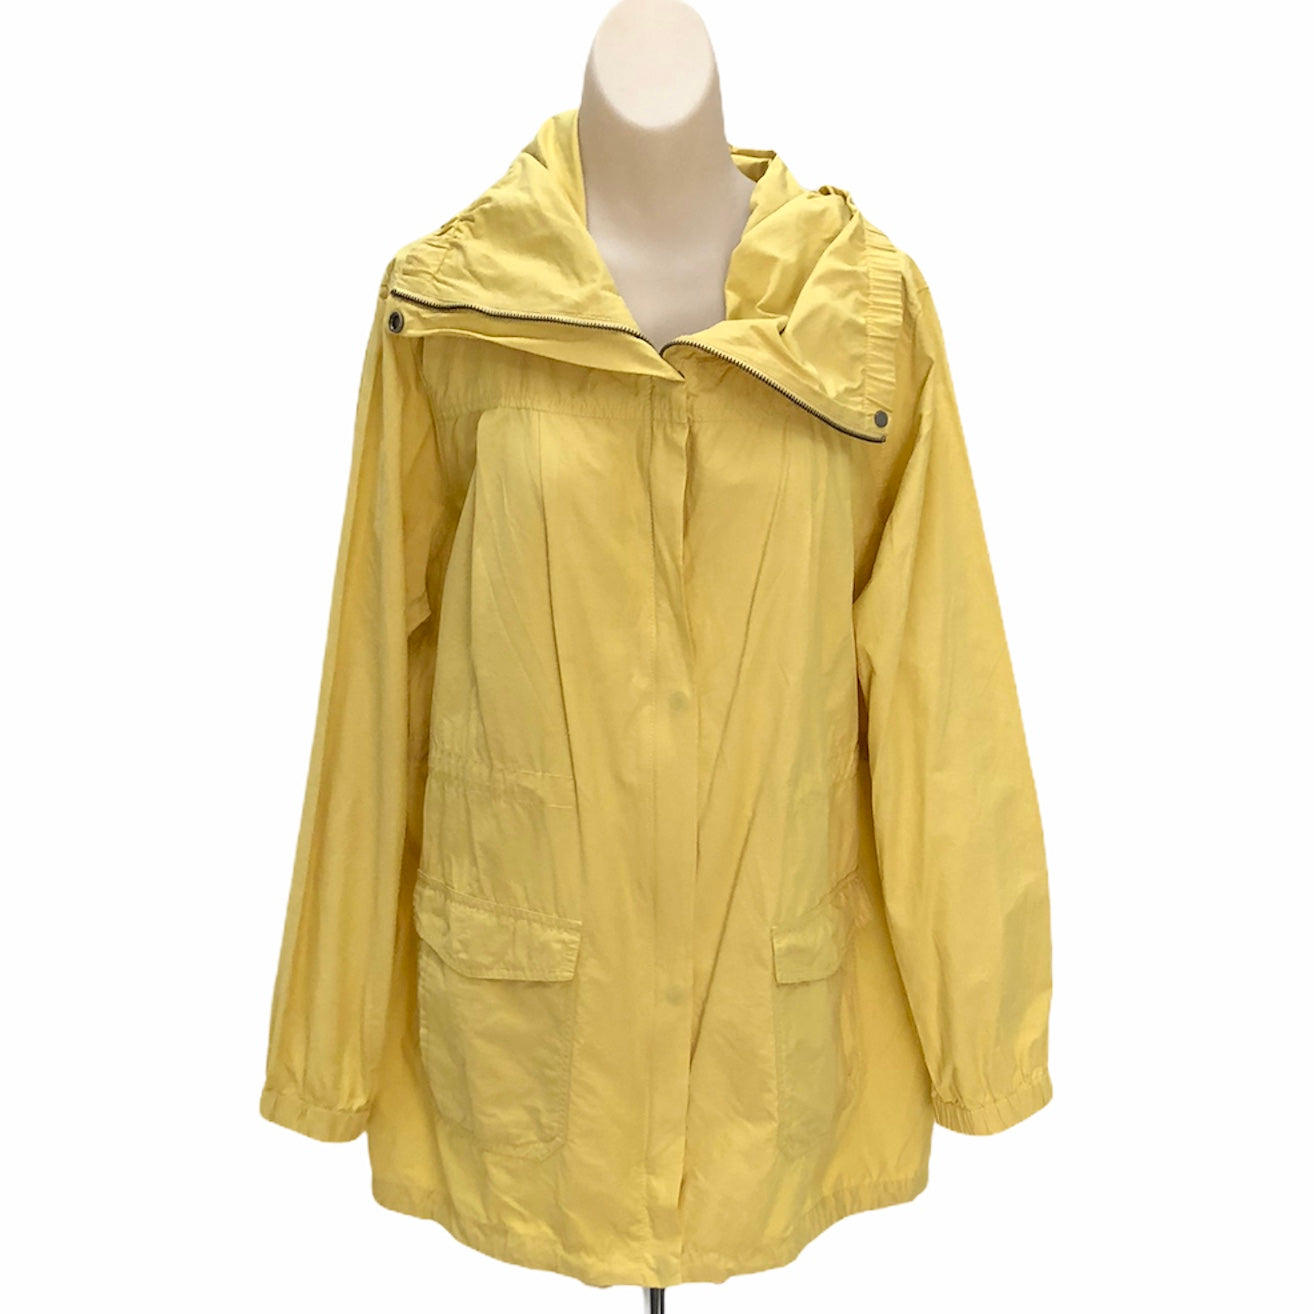 Primary Photo - BRAND: EILEEN FISHER <BR>STYLE: JACKET OUTDOOR <BR>COLOR: YELLOW <BR>SIZE: XL <BR>SKU: 293-29311-31015